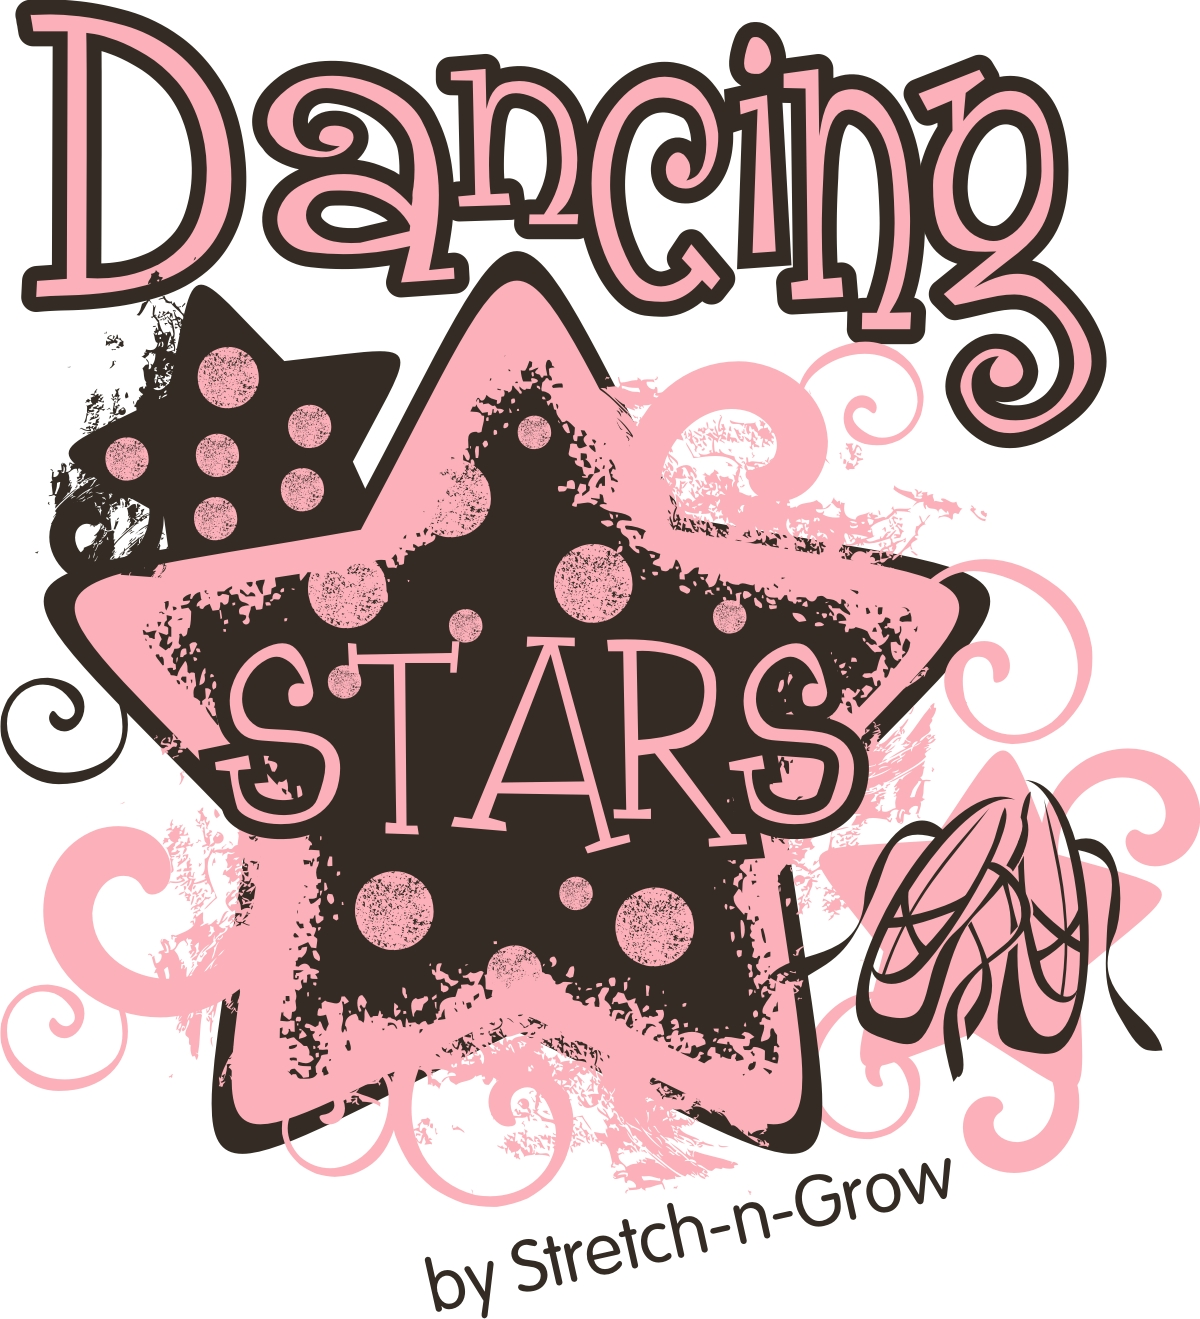 http://www.stretchandgrowfit.com/wp-content/uploads/2014/06/dancingstars_color1.jpg